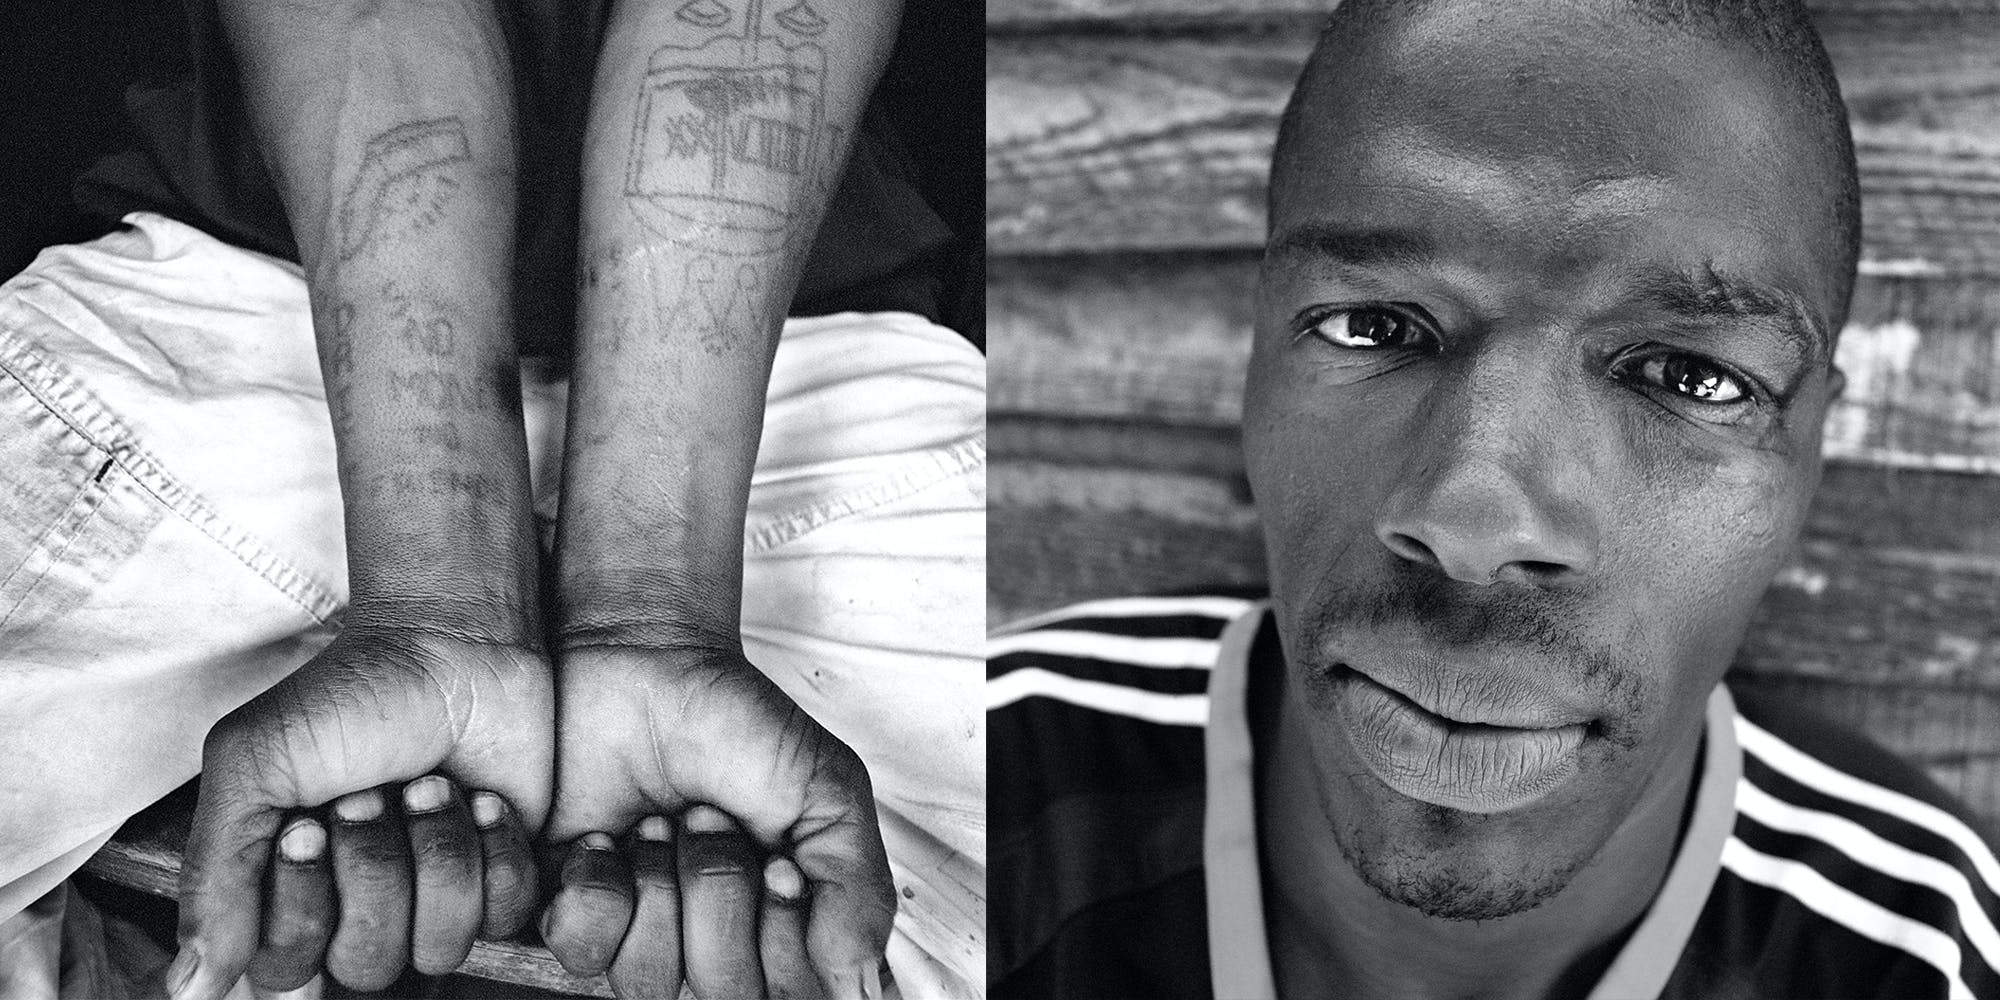 The Numbers: Inside South Africa's Most Notorious Prison Gang